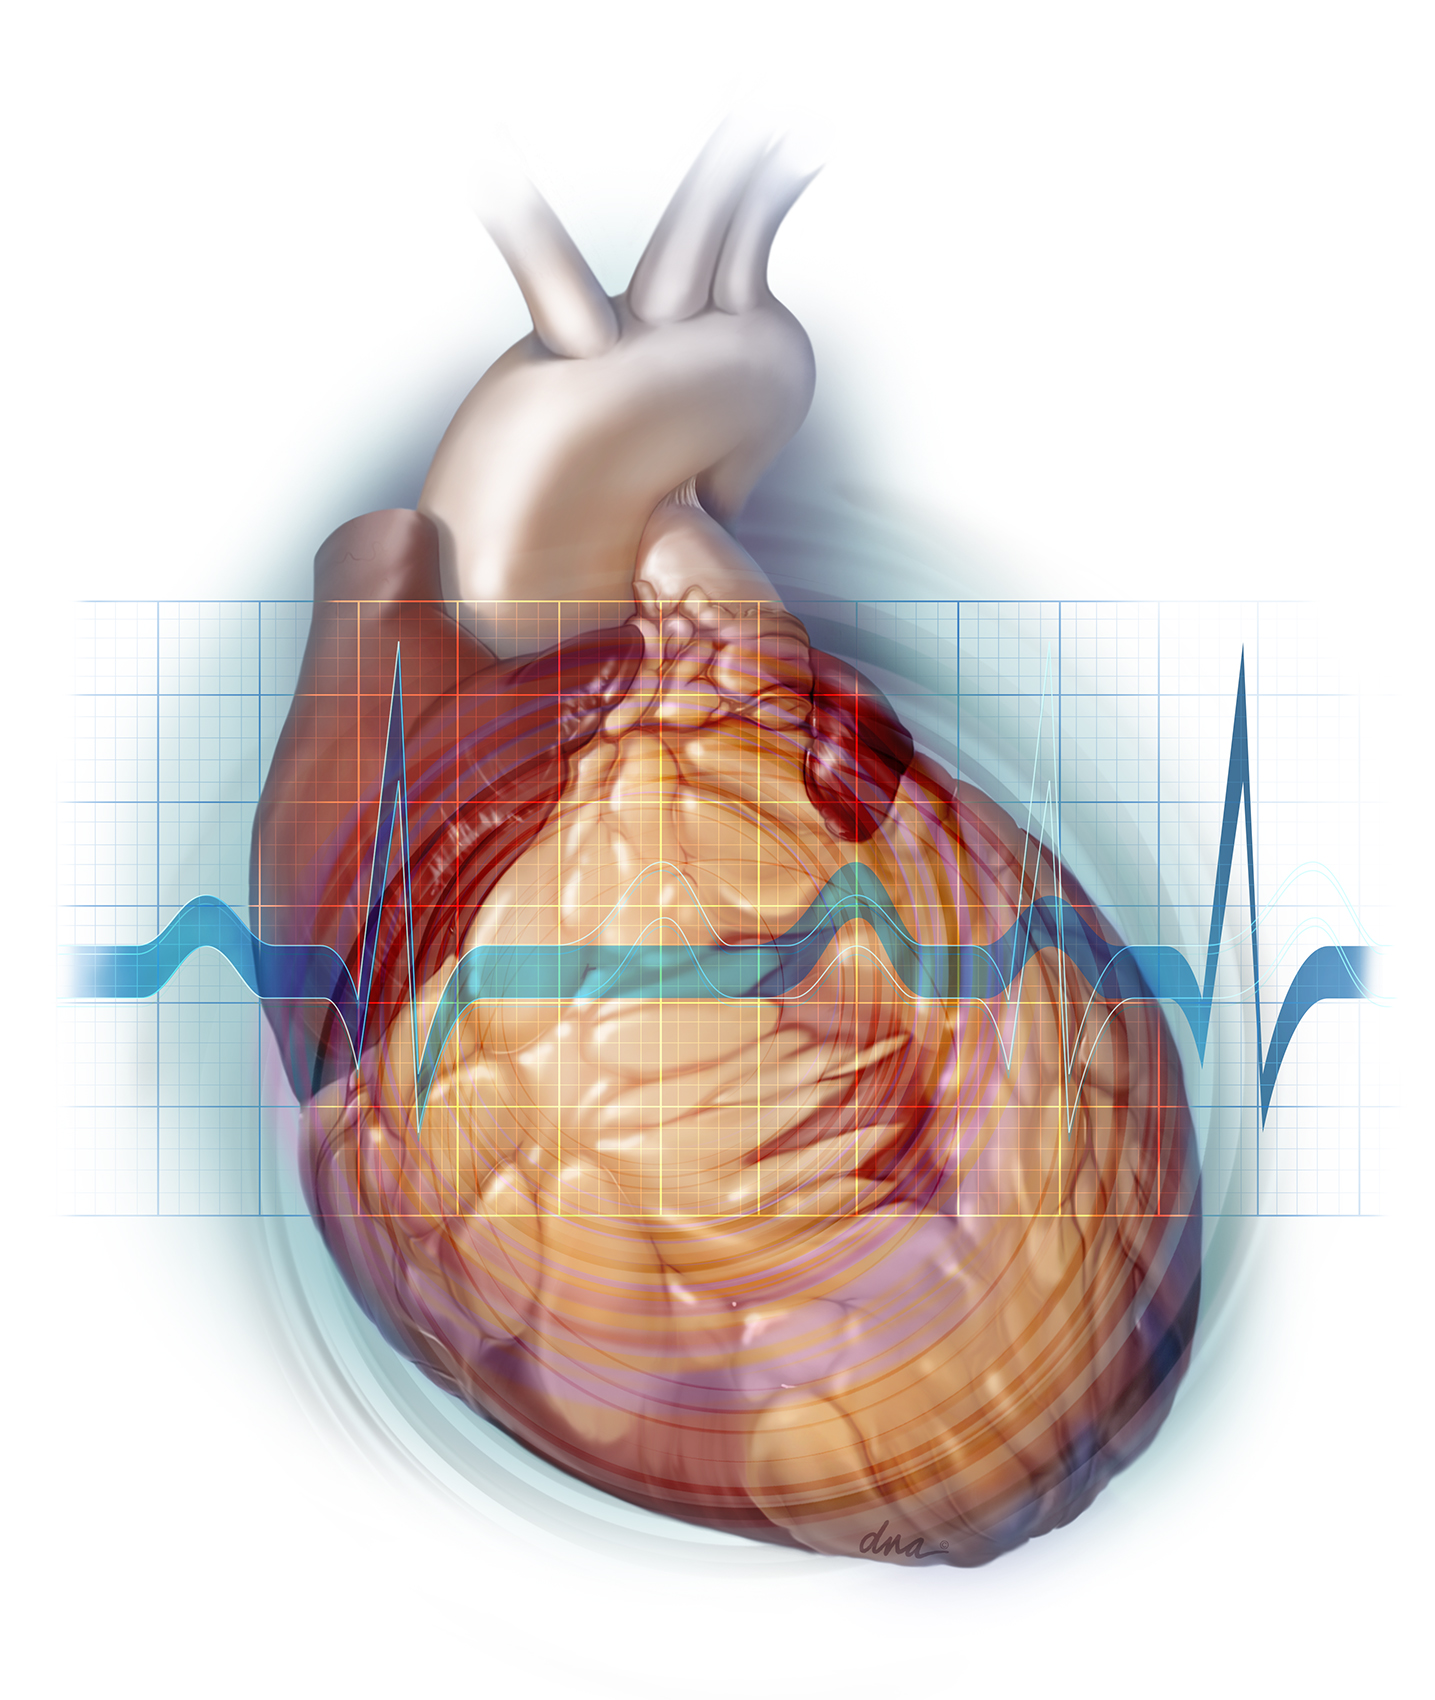 Cardiotoxicity Resulting in Decreased Ventricular Function